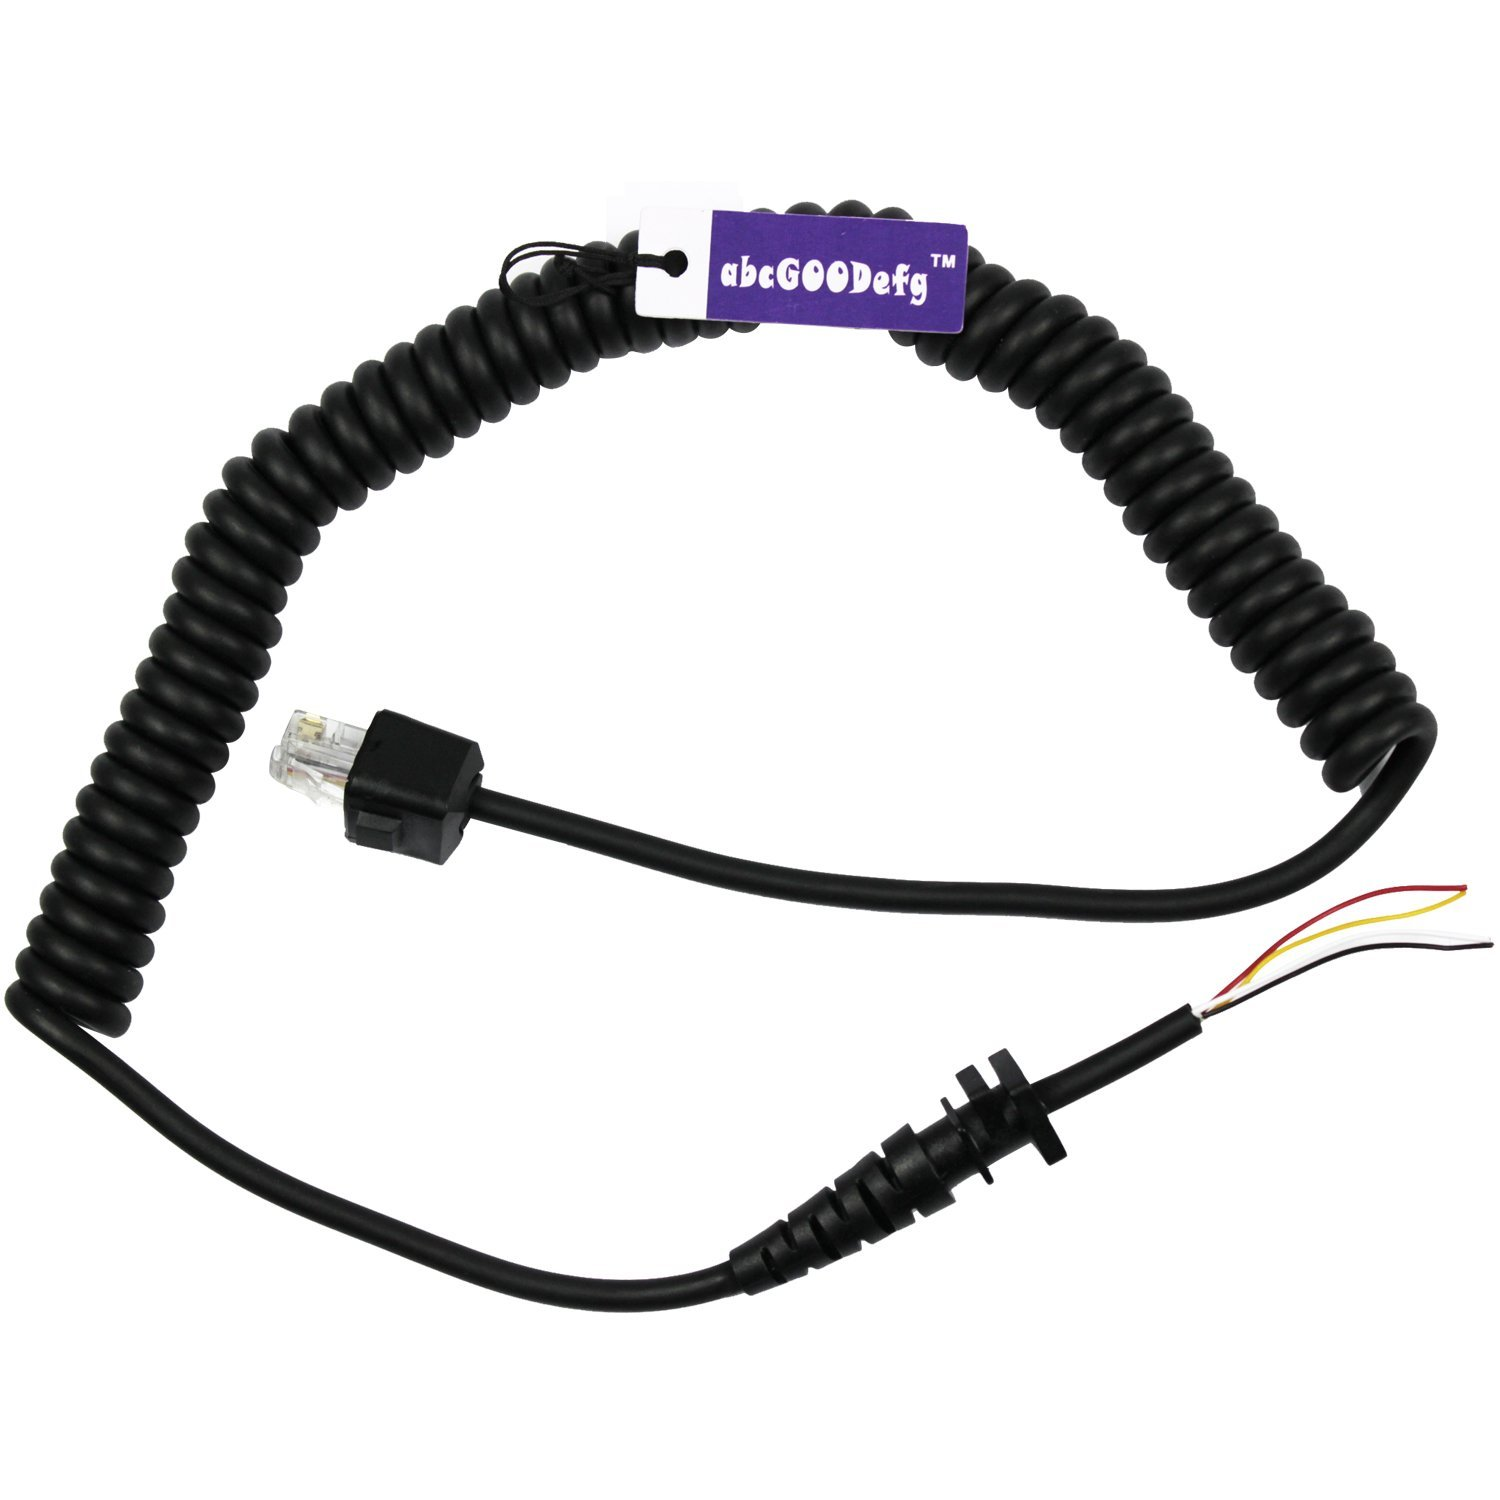 Abcgoodefg 8 Pin 4 Wire Speaker Mic Cable Line Cord For